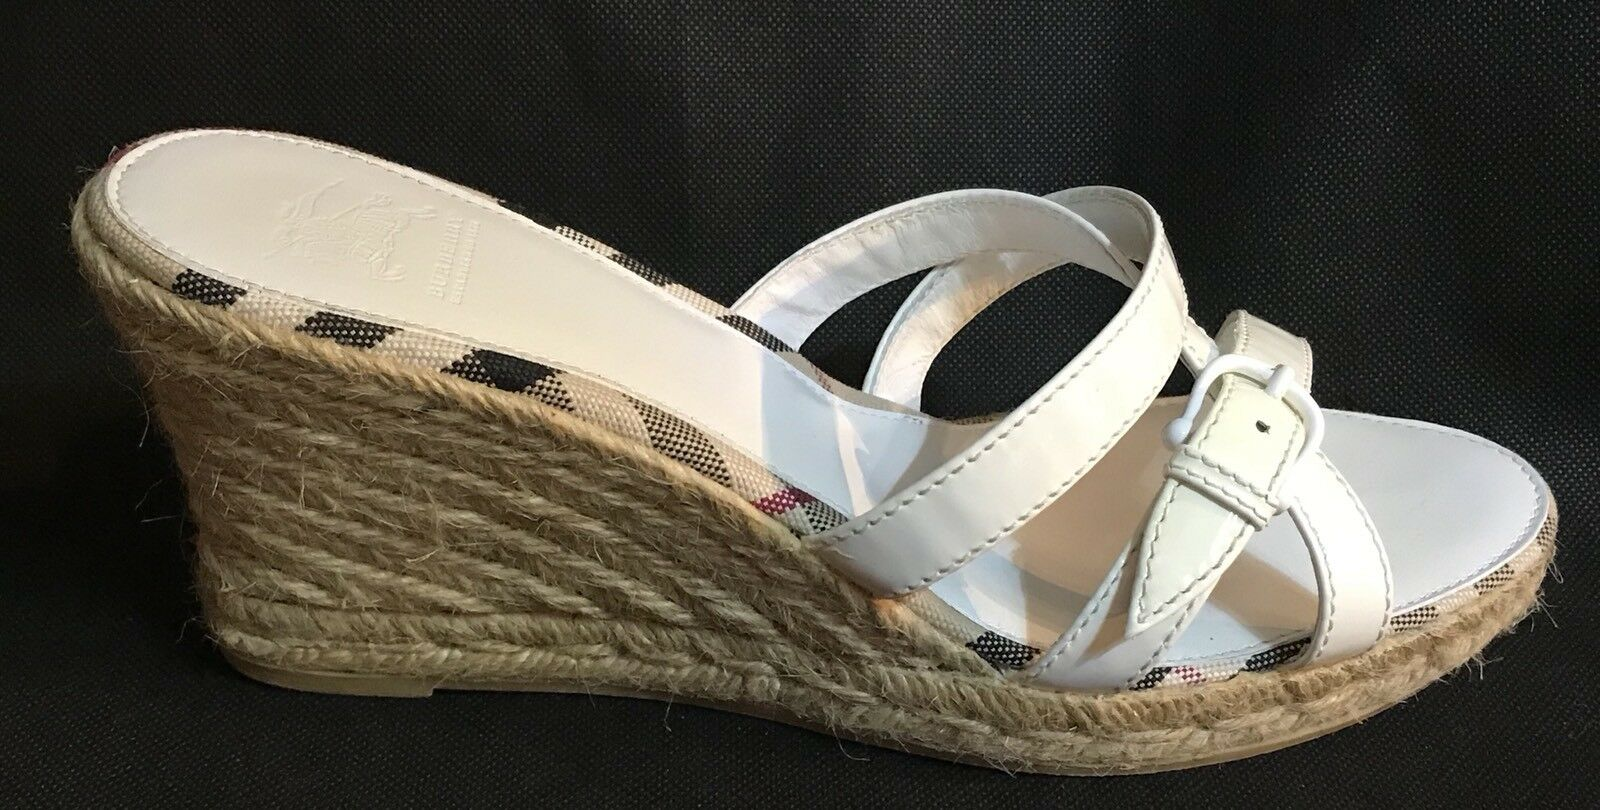 Burberry Wedge Sandals    Shoes Platforms White Size:41(10-10.5) Italy      NWOB